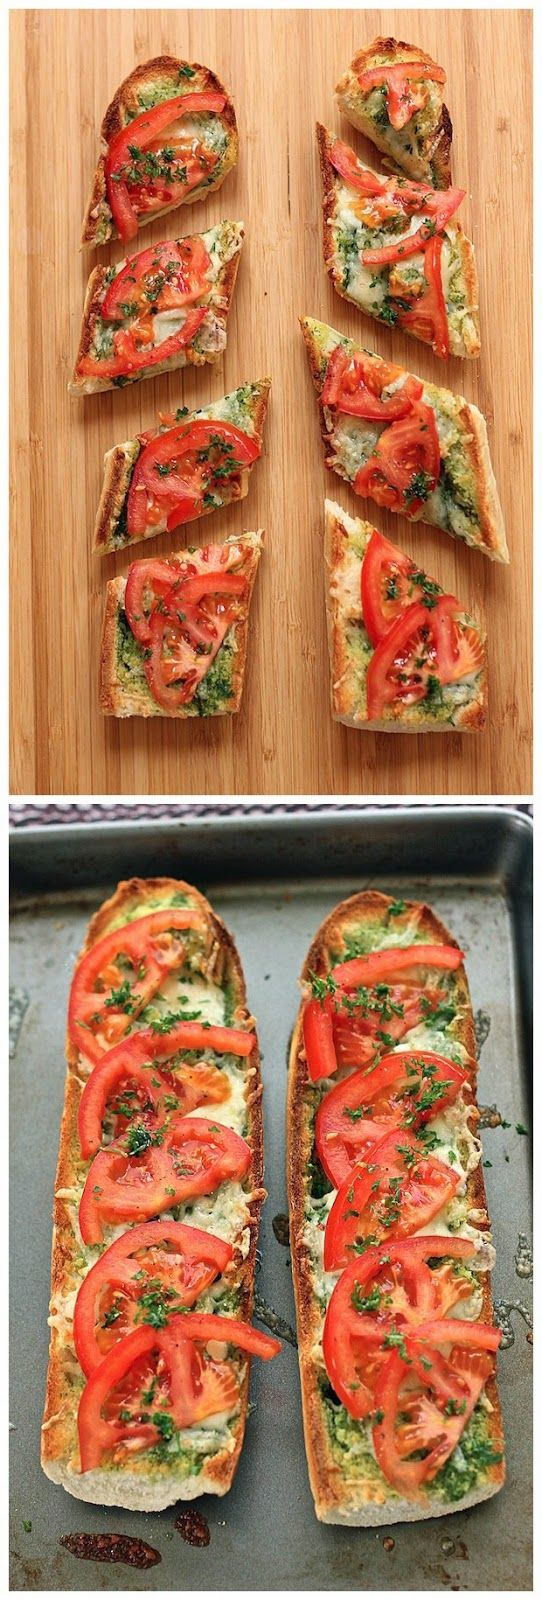 Open Faced Grilled Cheese with Tomato - Recipe Weekend